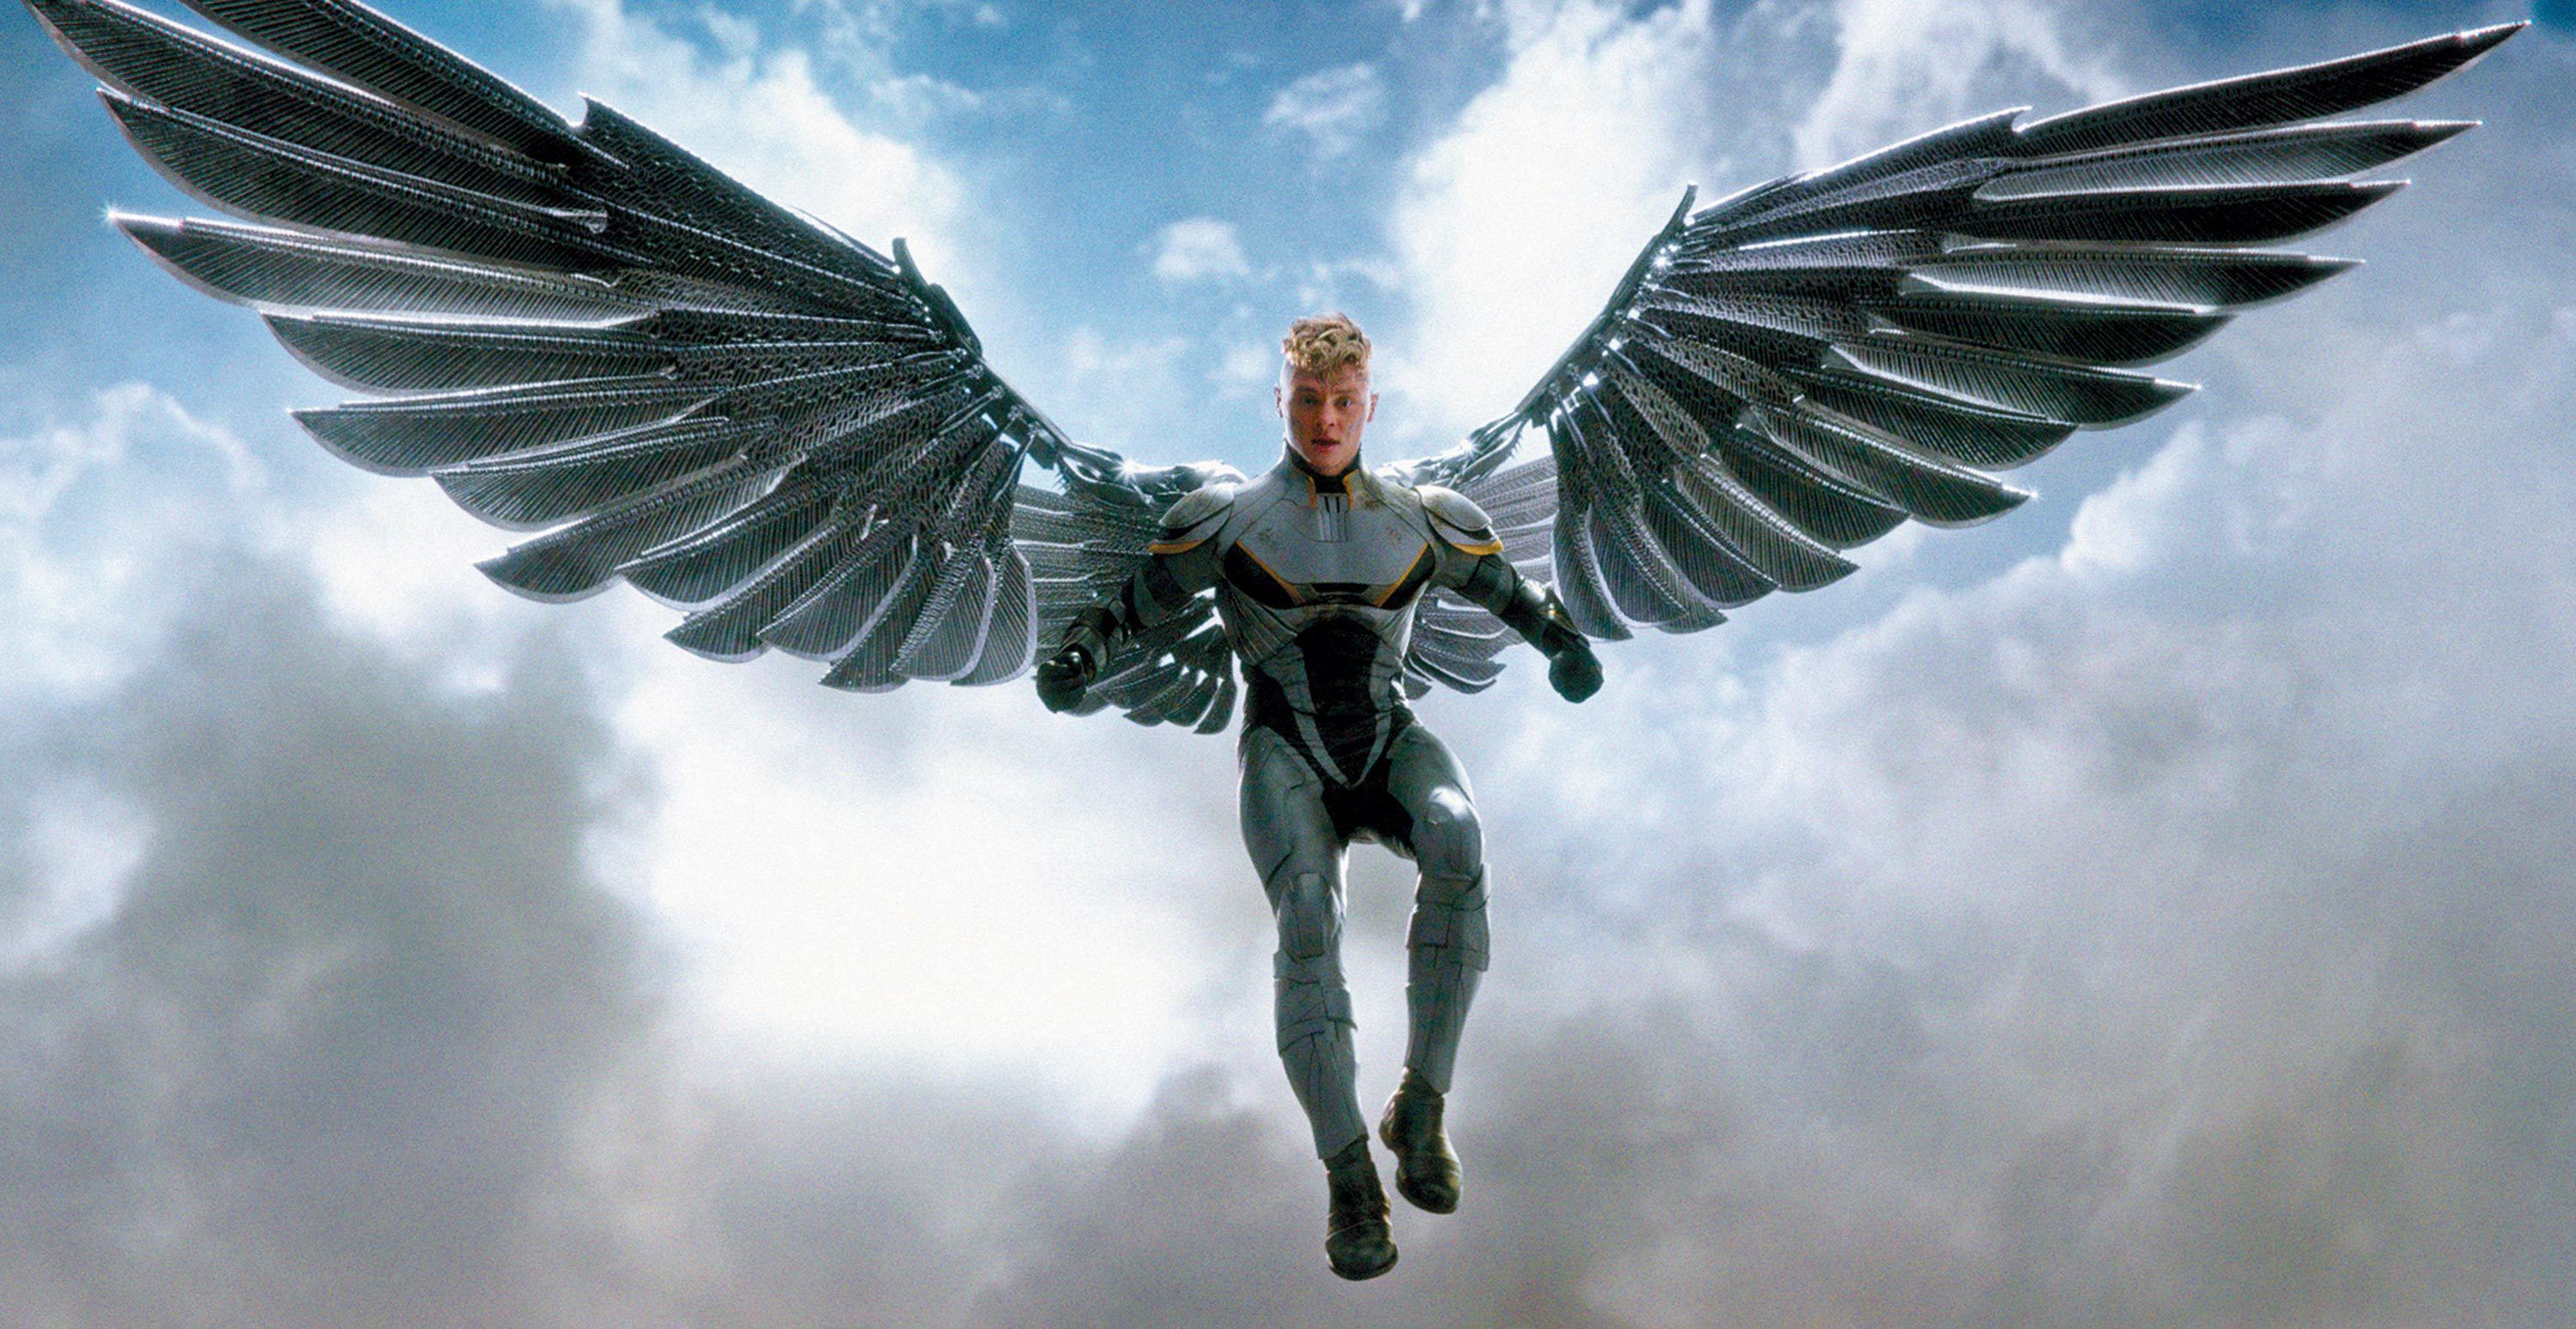 Archangel dans le film X-Men : Apocalypse.